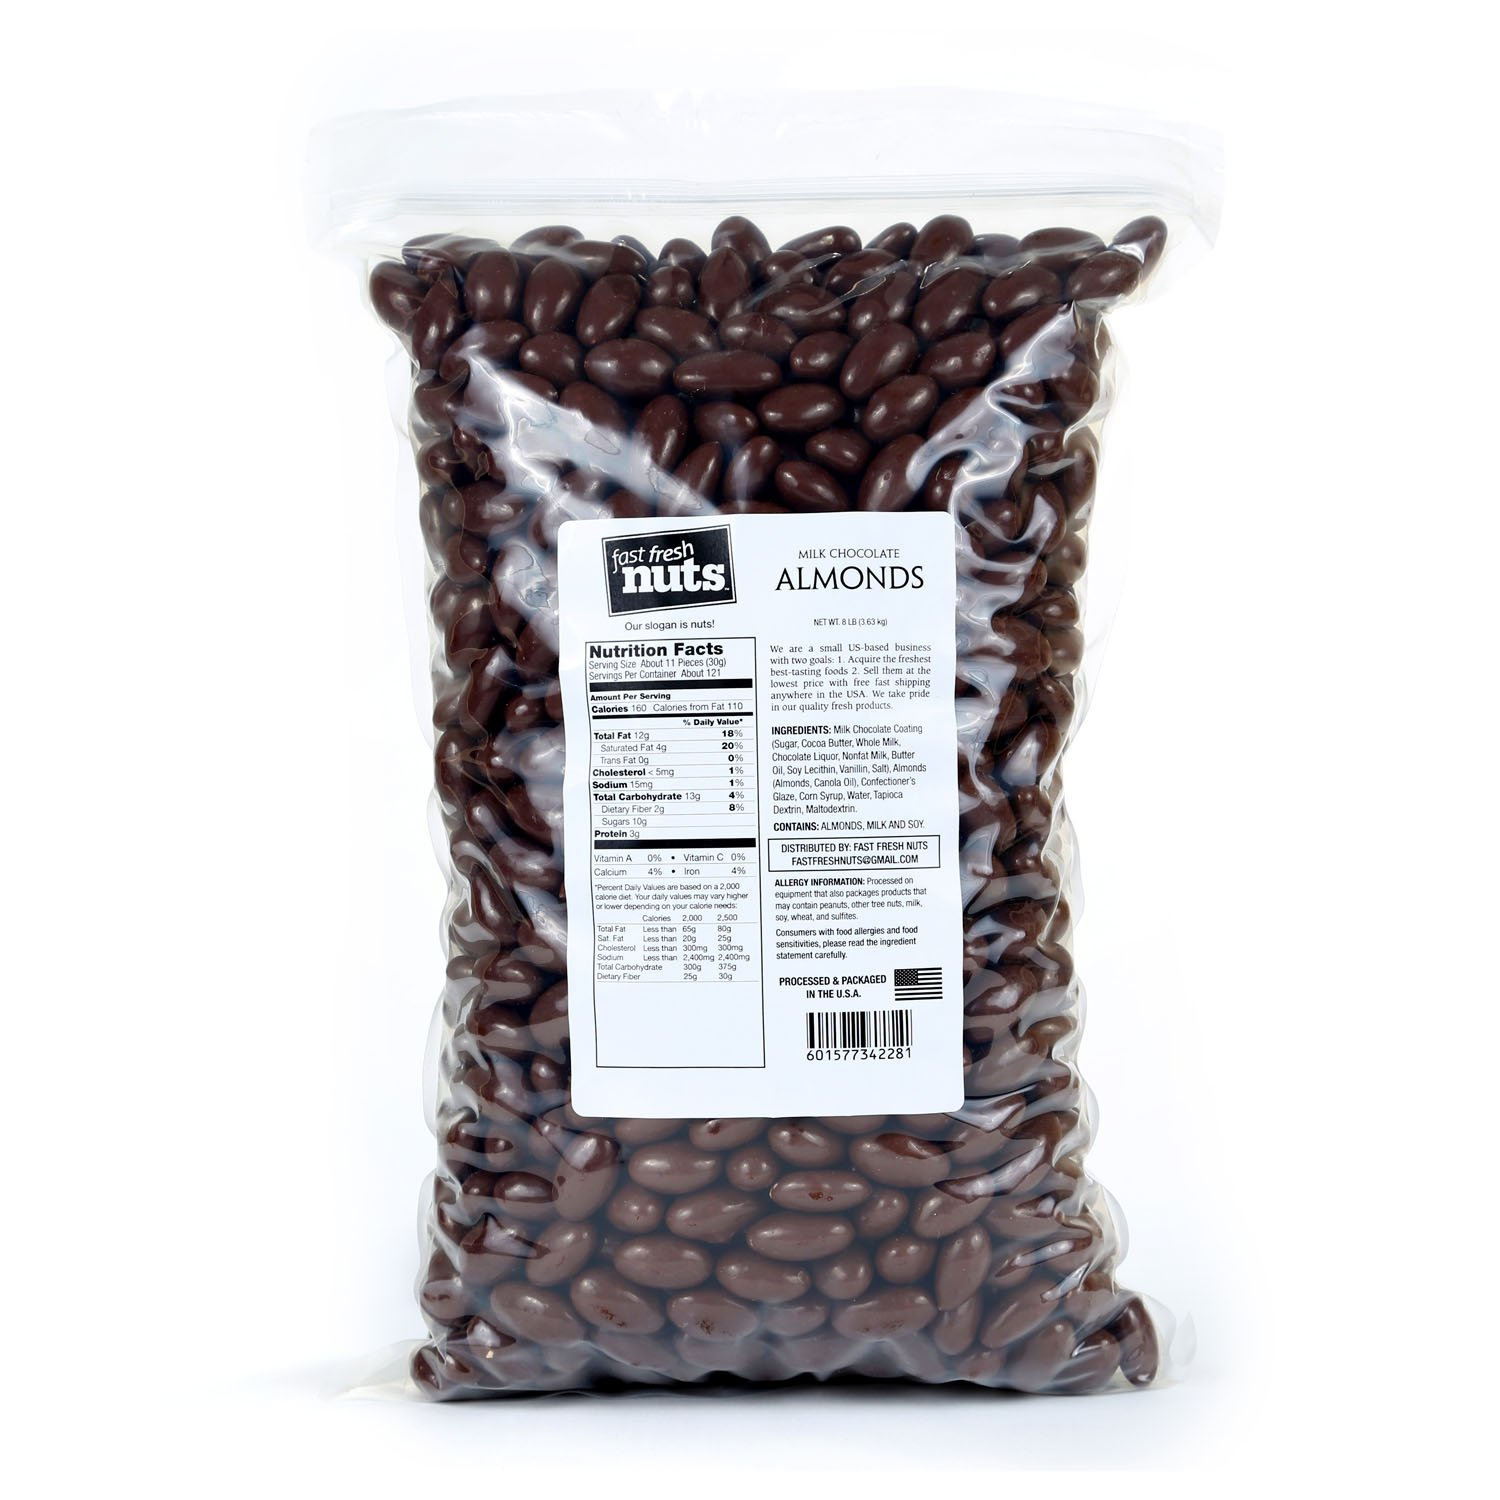 Bulk Milk Chocolate Almonds - 8 lb - Fast Fresh Nuts